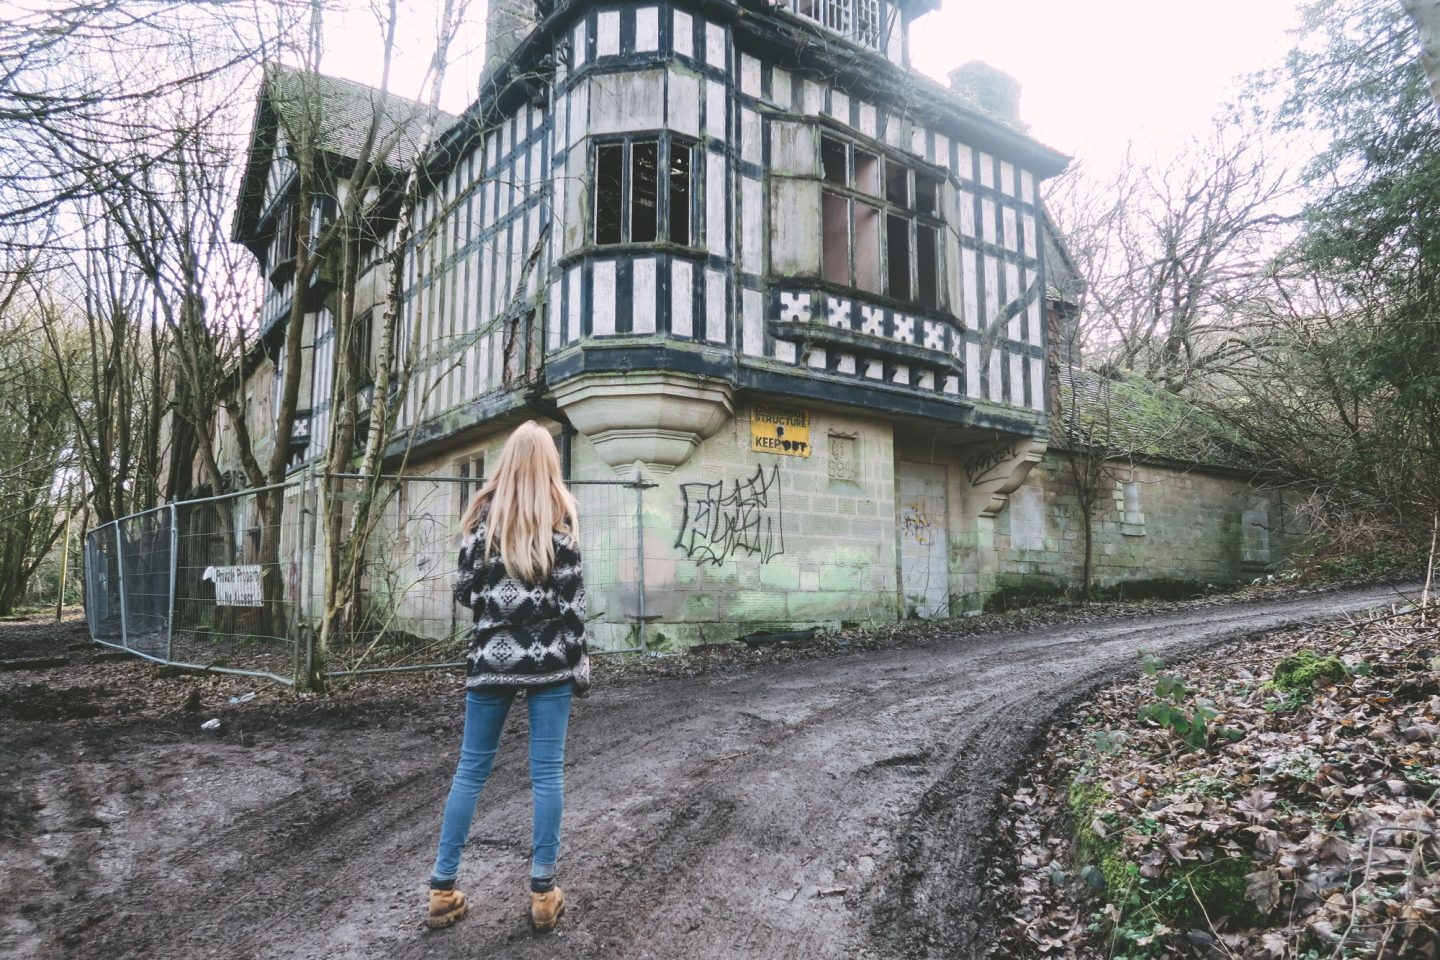 The Abandoned House, Shining Cliff Woods